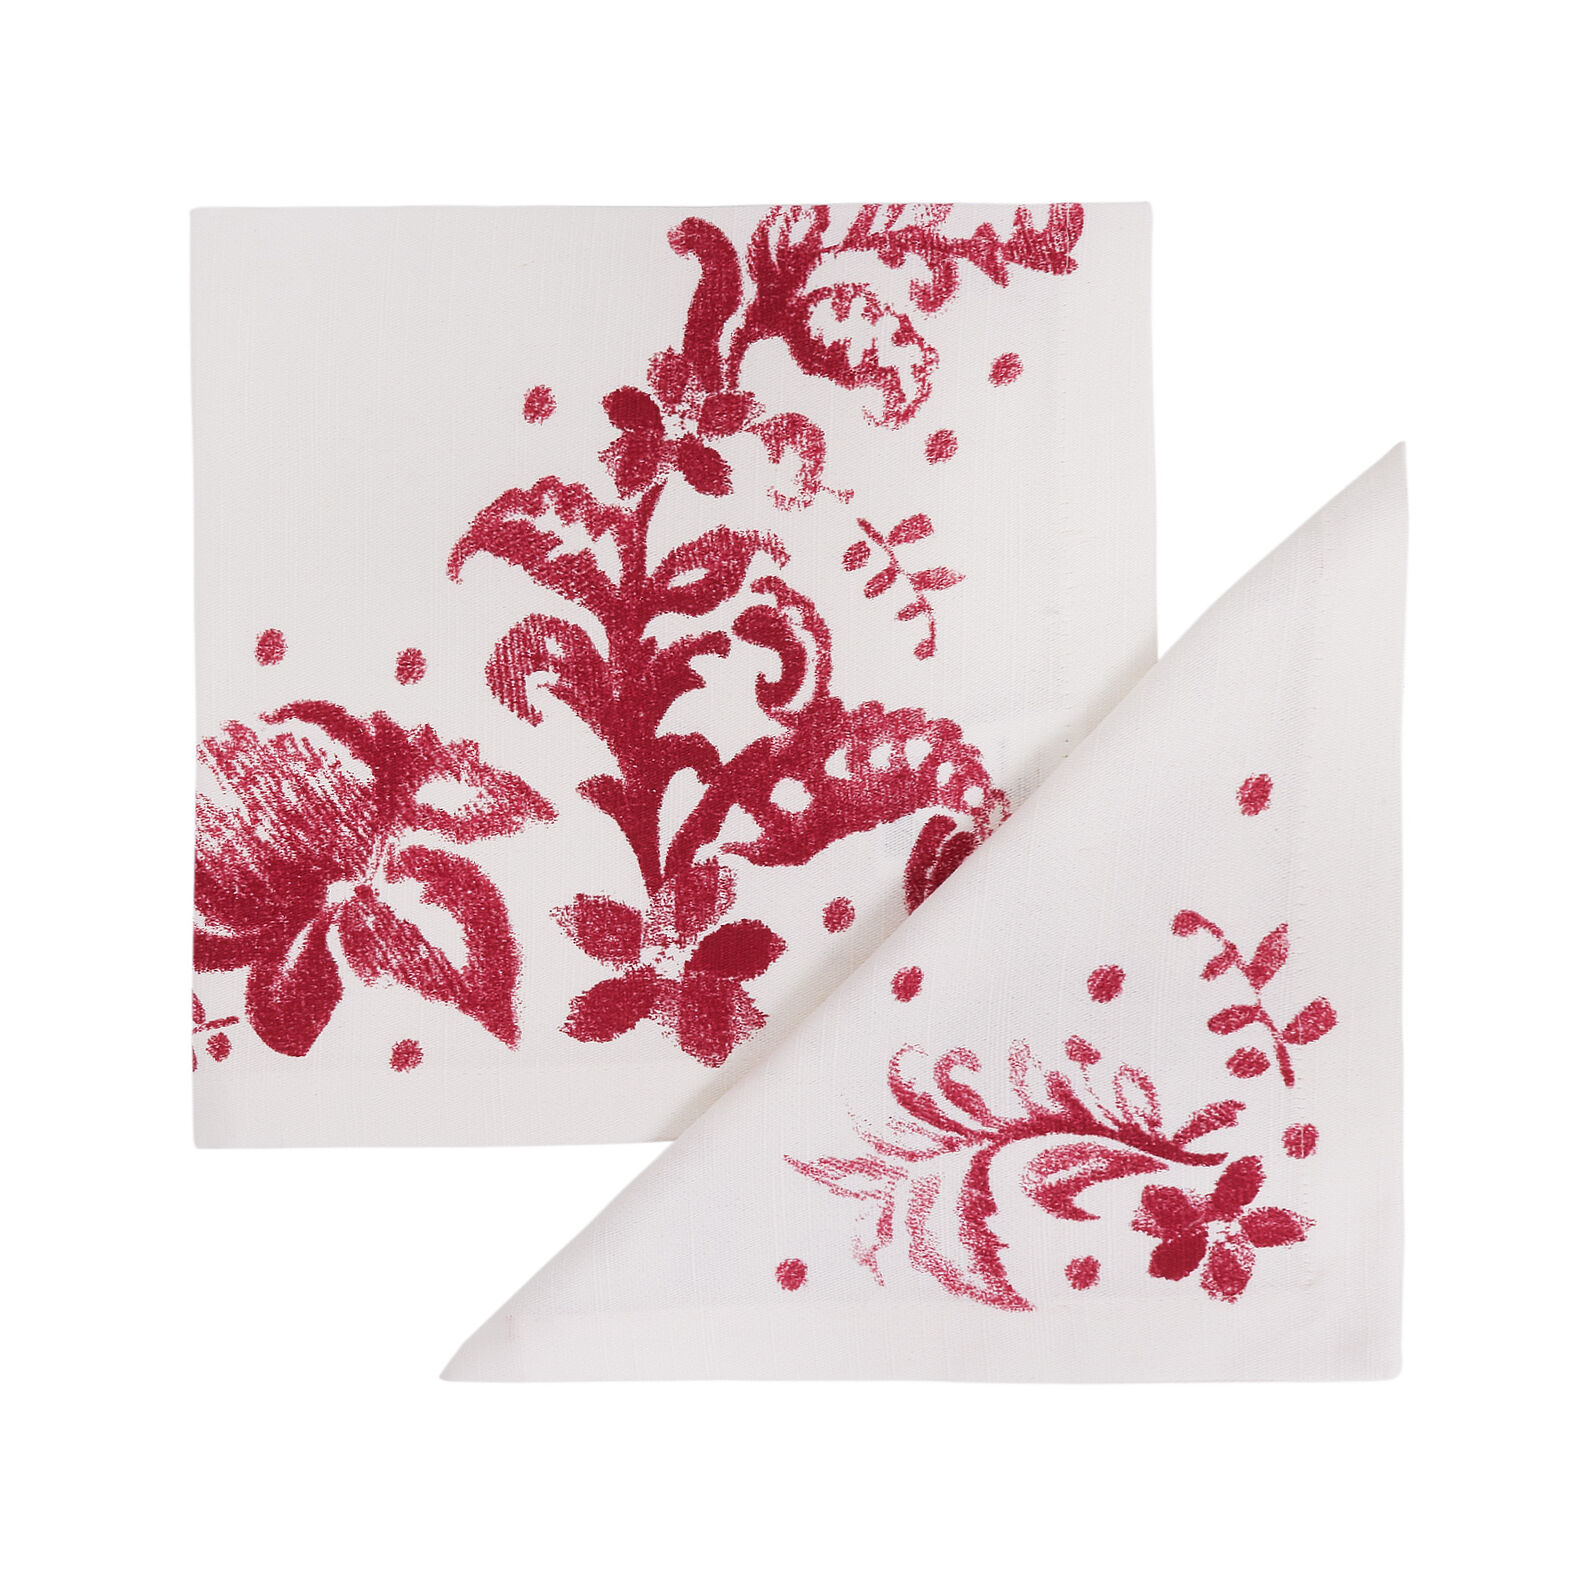 Set of 2 napkins in 100% cotton with floral print